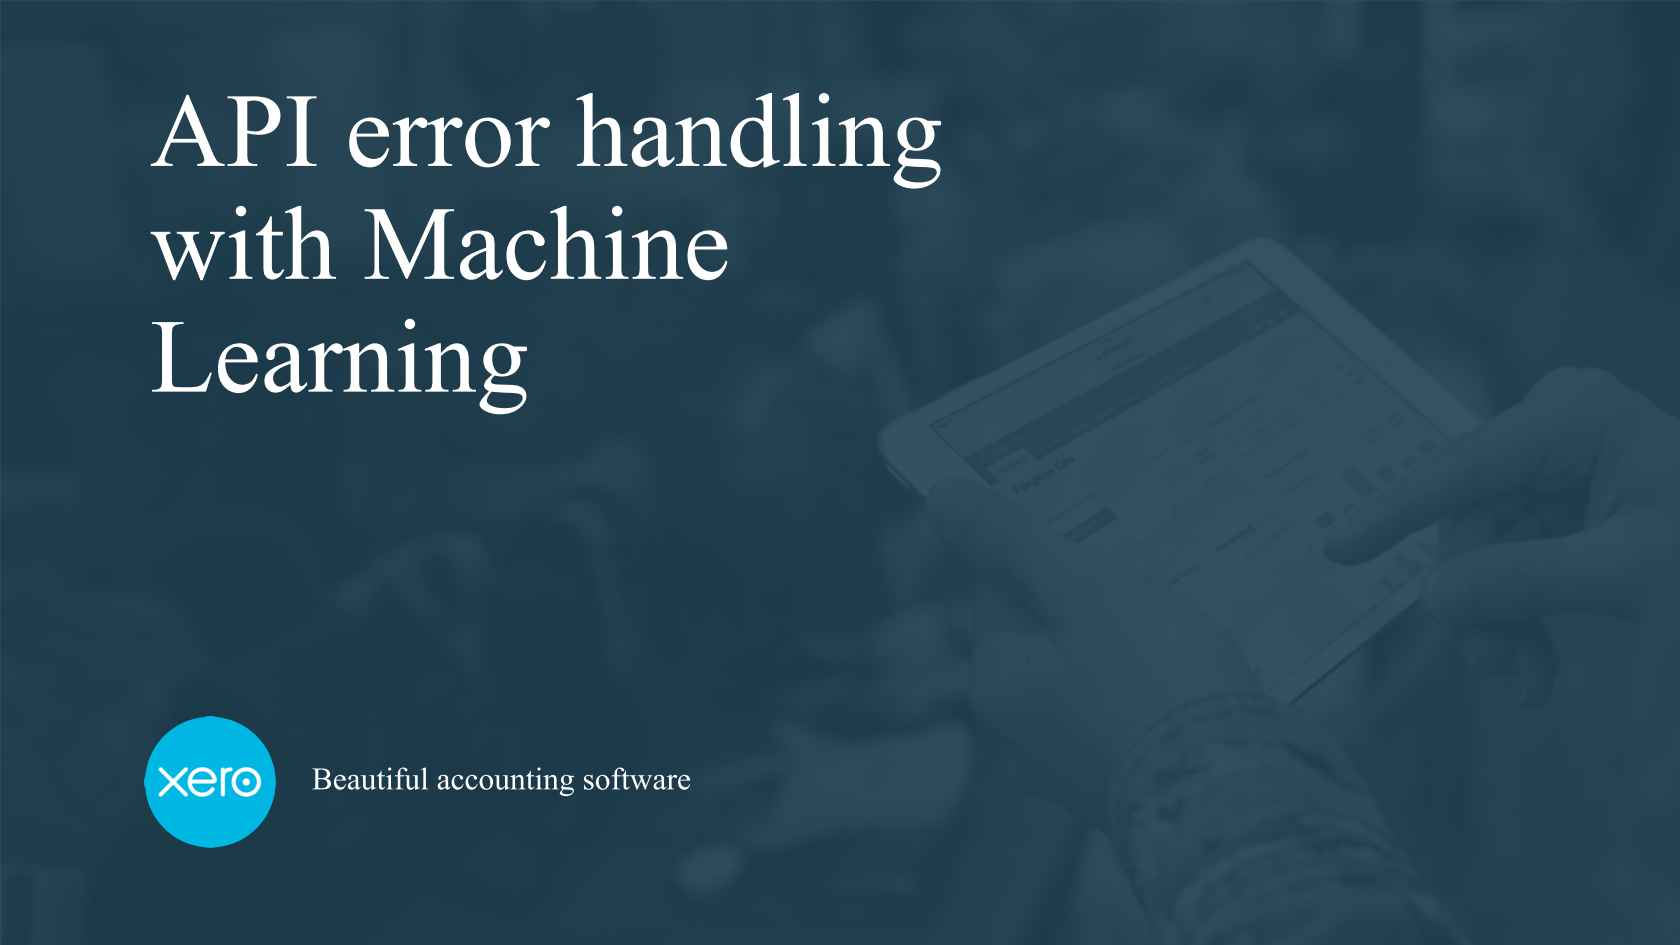 Machine Learning Your Way to Smarter API Error Responses